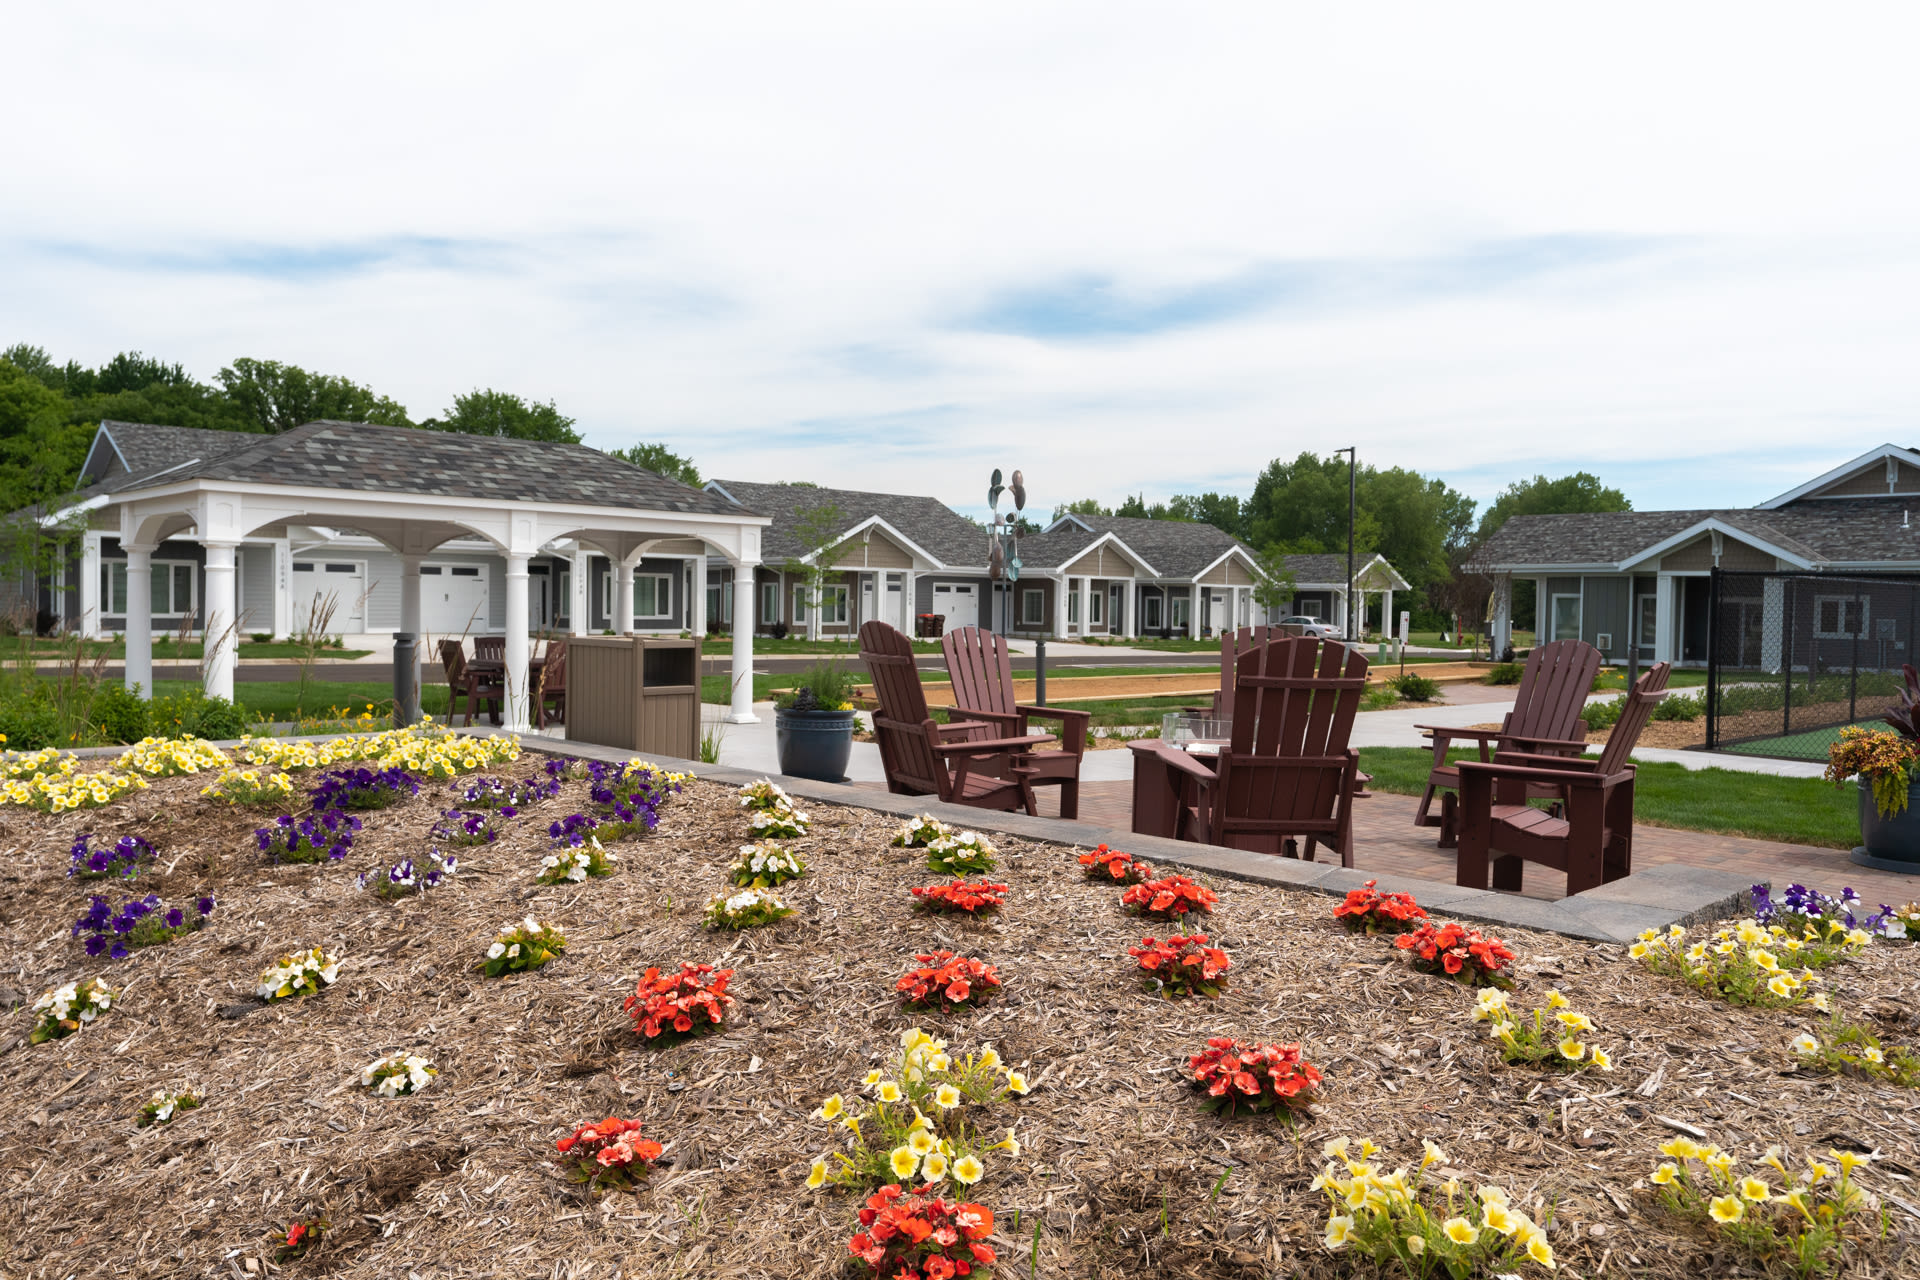 garden and lounge area at The Fields at Arbor Glen in Lake Elmo, Minnesota